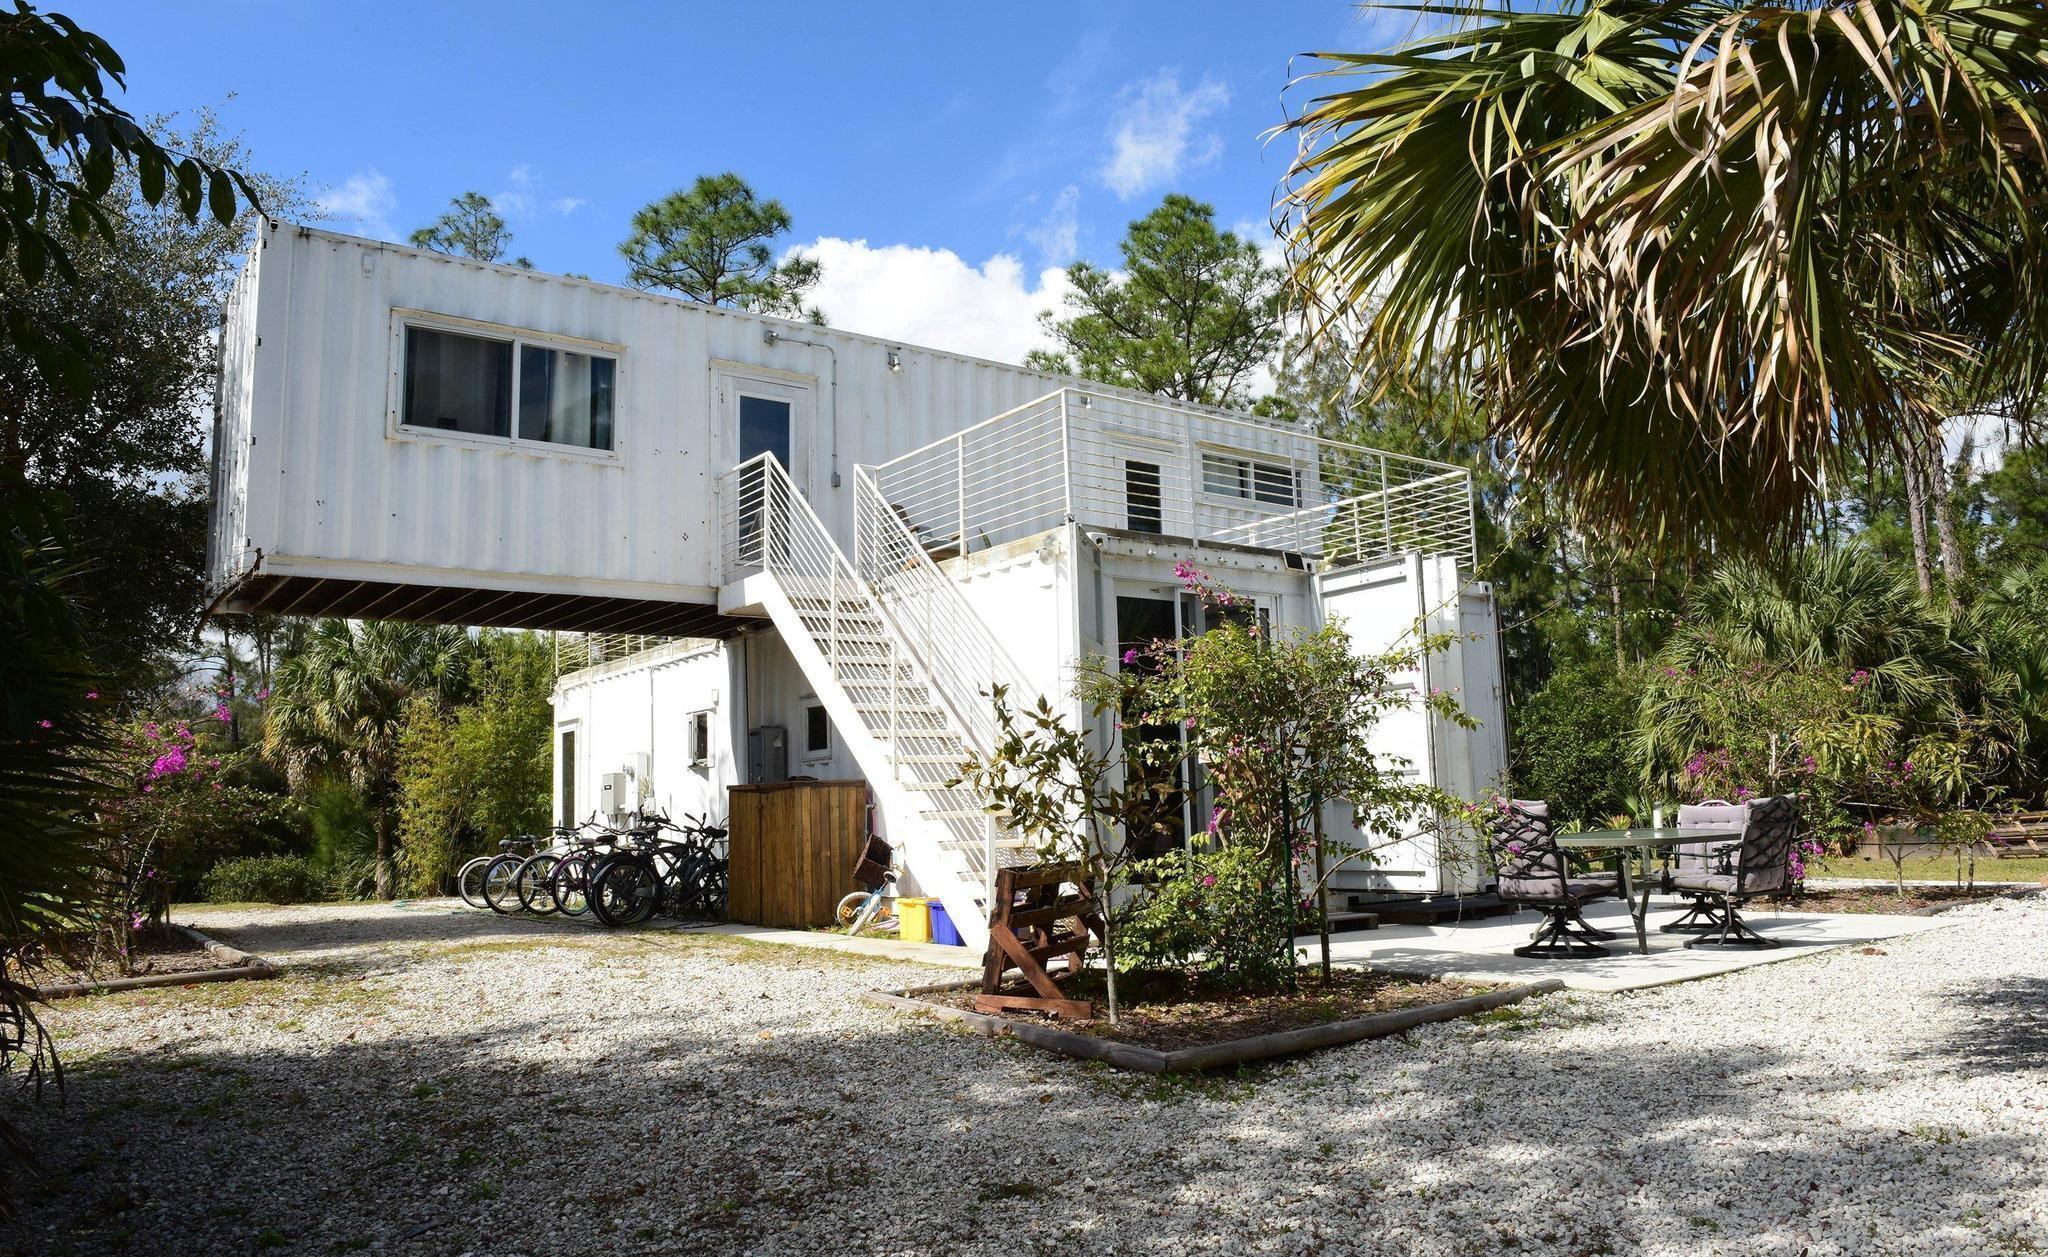 Superior Shipping Containers Taking On New Life As Homes And Businesses   Sun  Sentinel